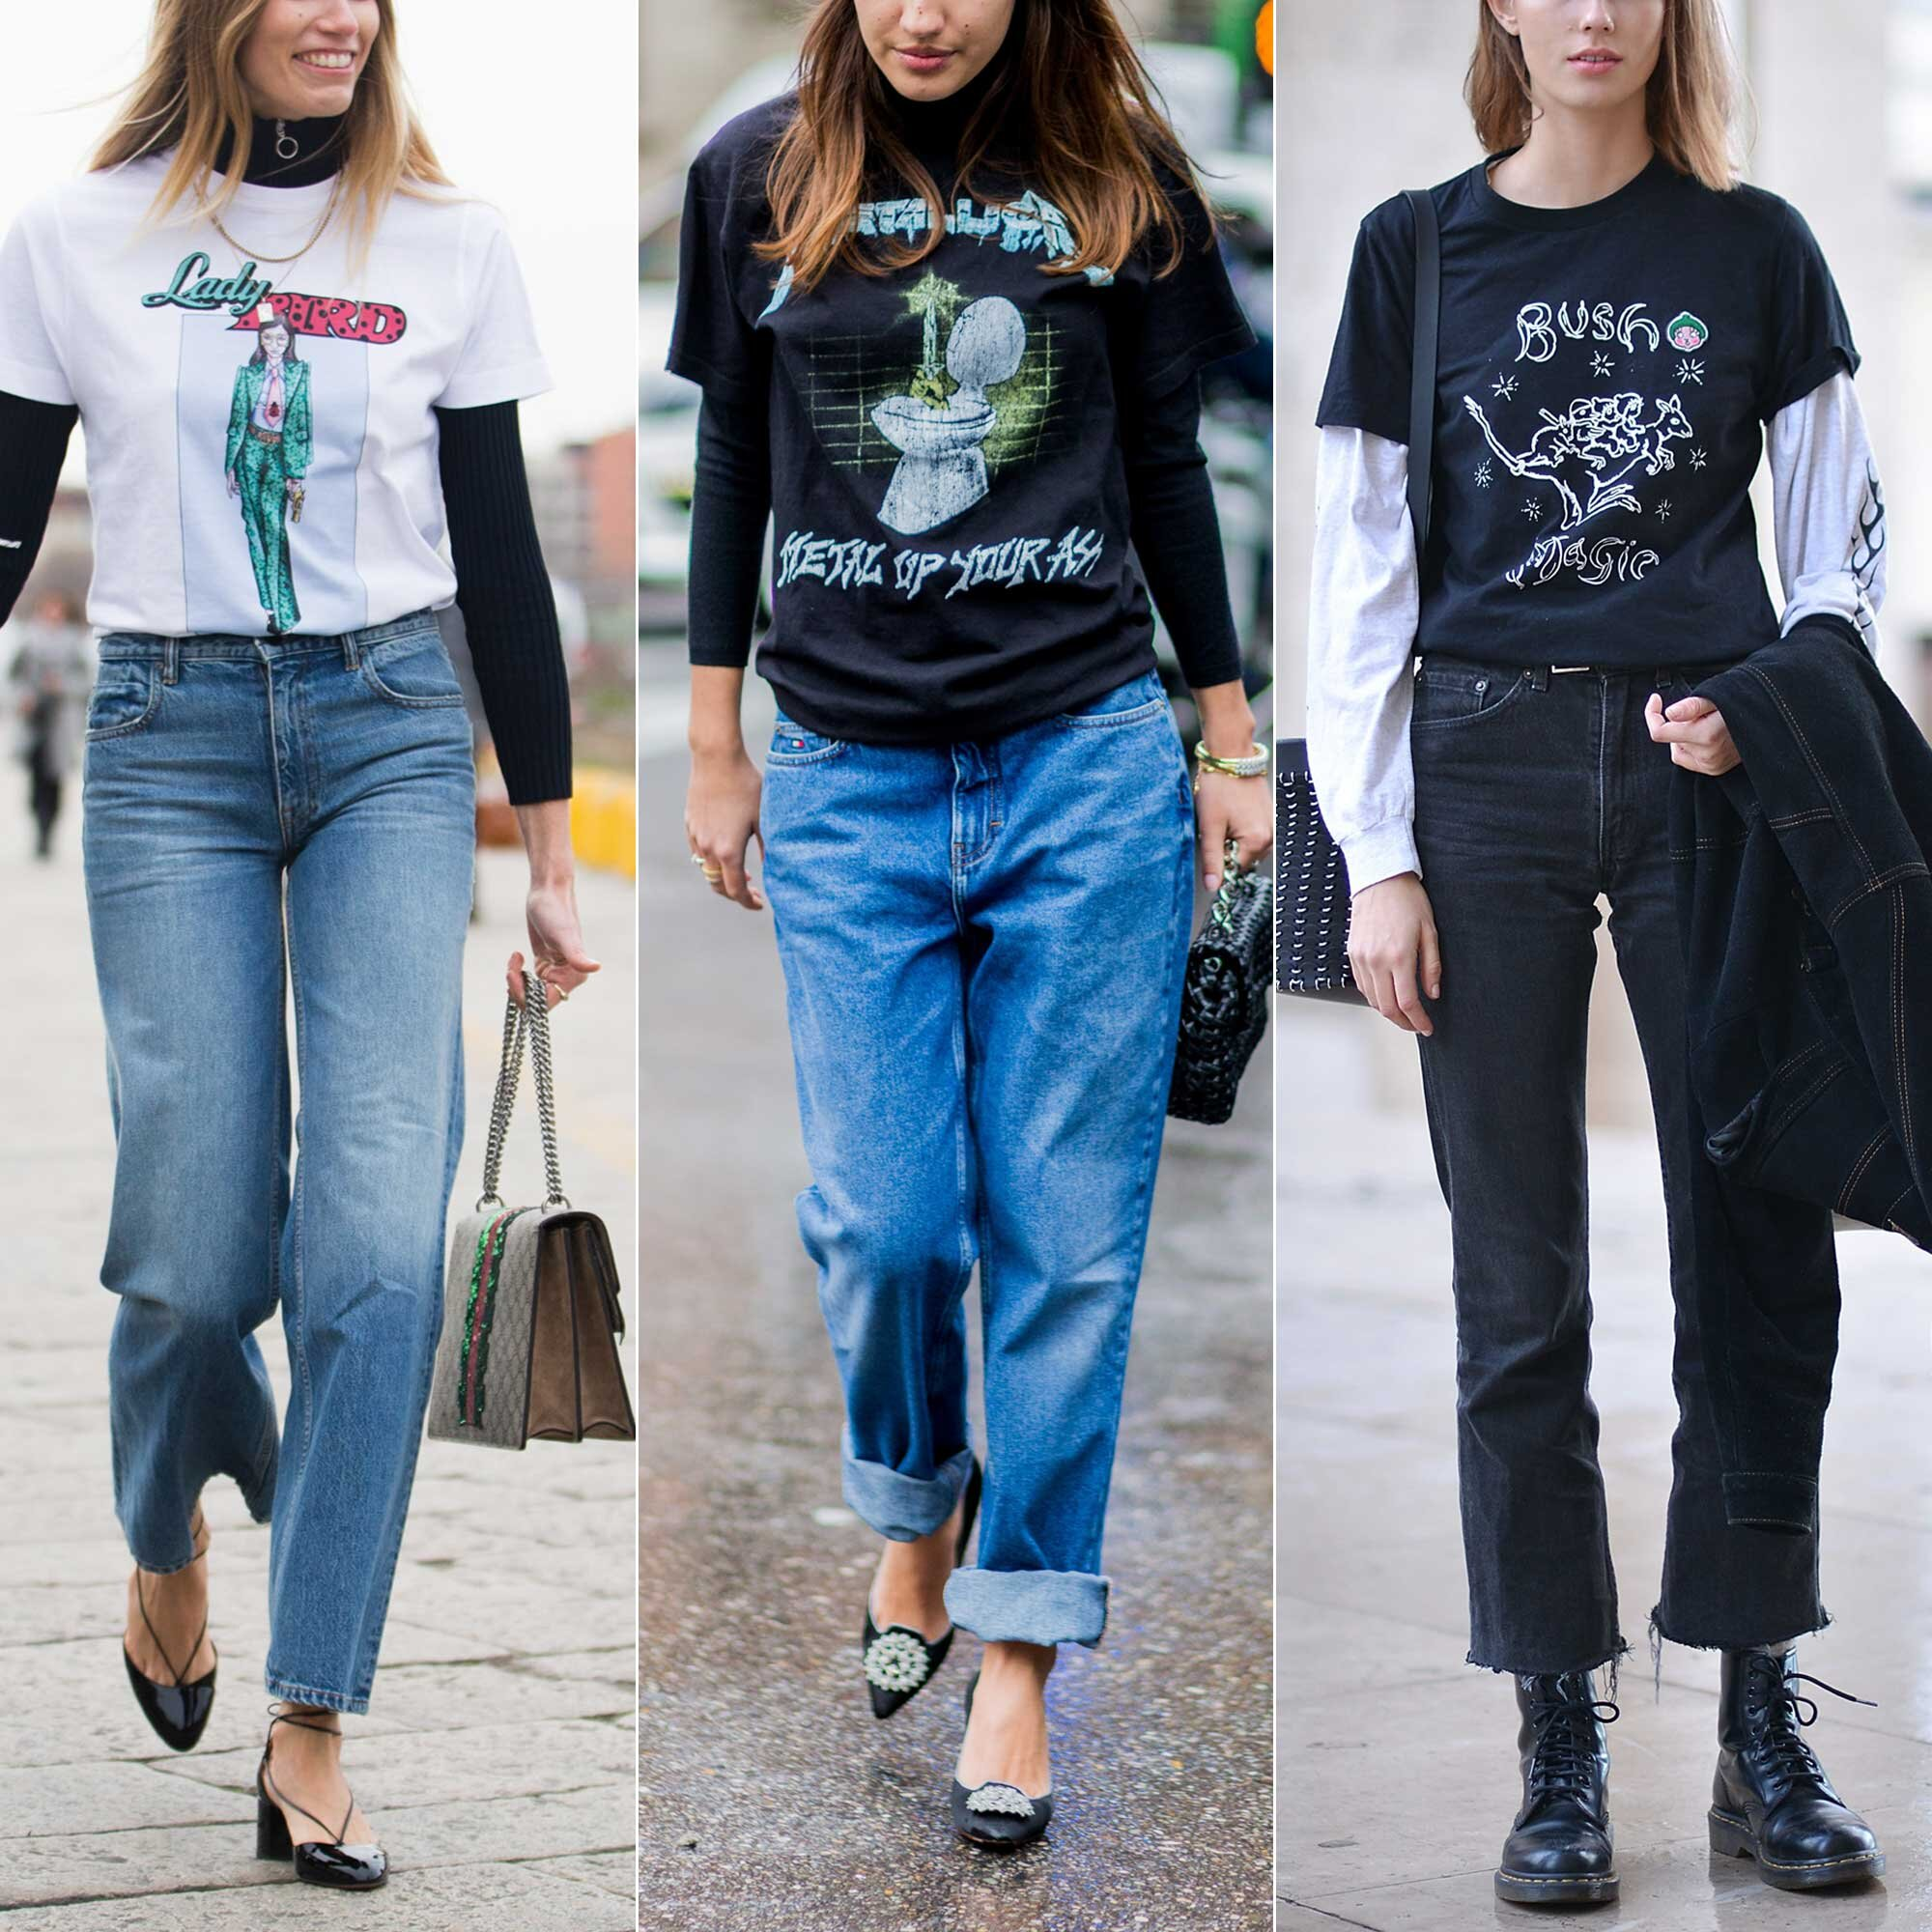 2016 Street Style Trend At Fashion Week Layering T Shirts